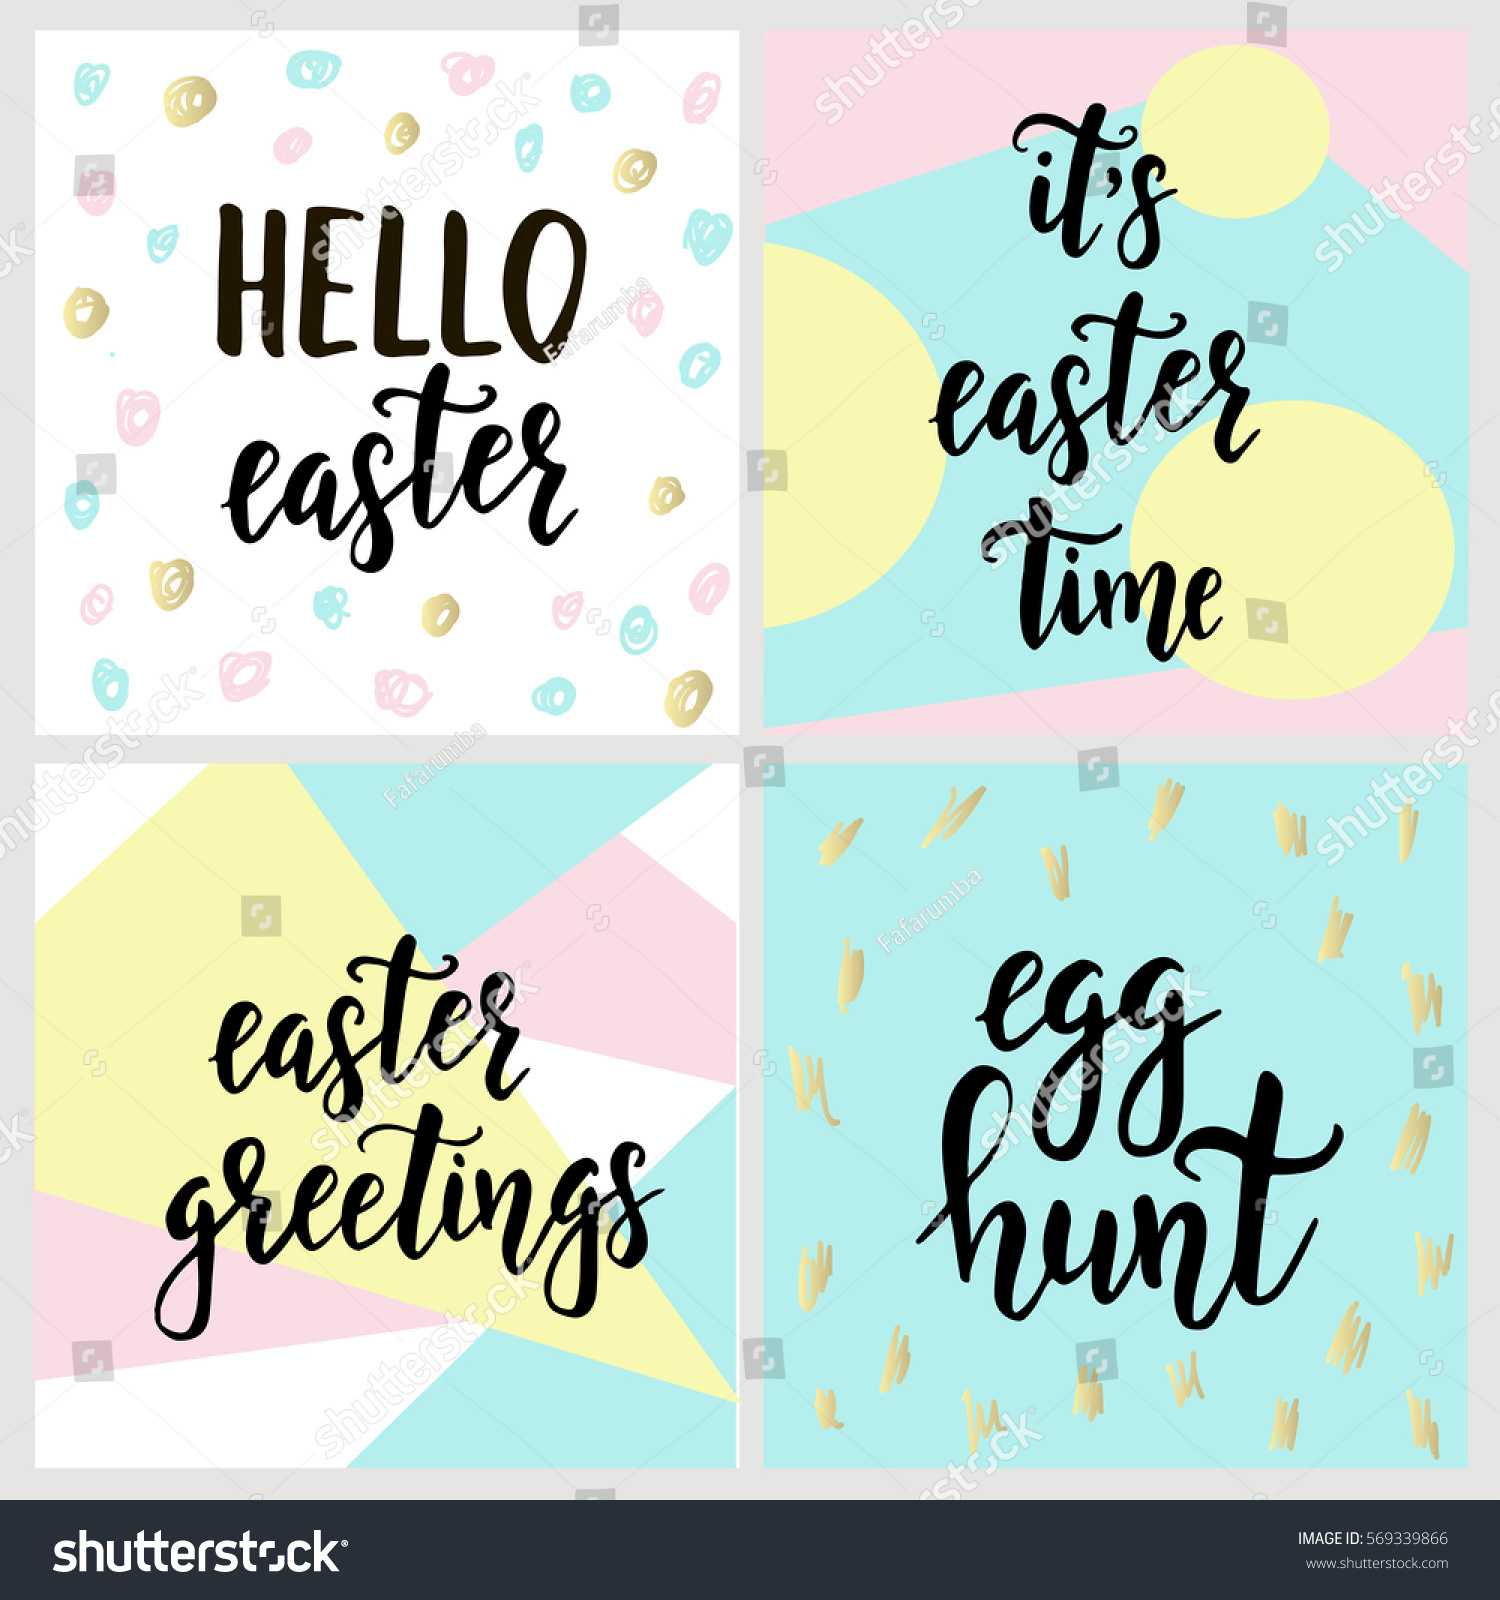 Set happy easter gift cards calligraphy stock vector 569339866 set happy easter gift cards calligraphy stock vector 569339866 shutterstock negle Choice Image